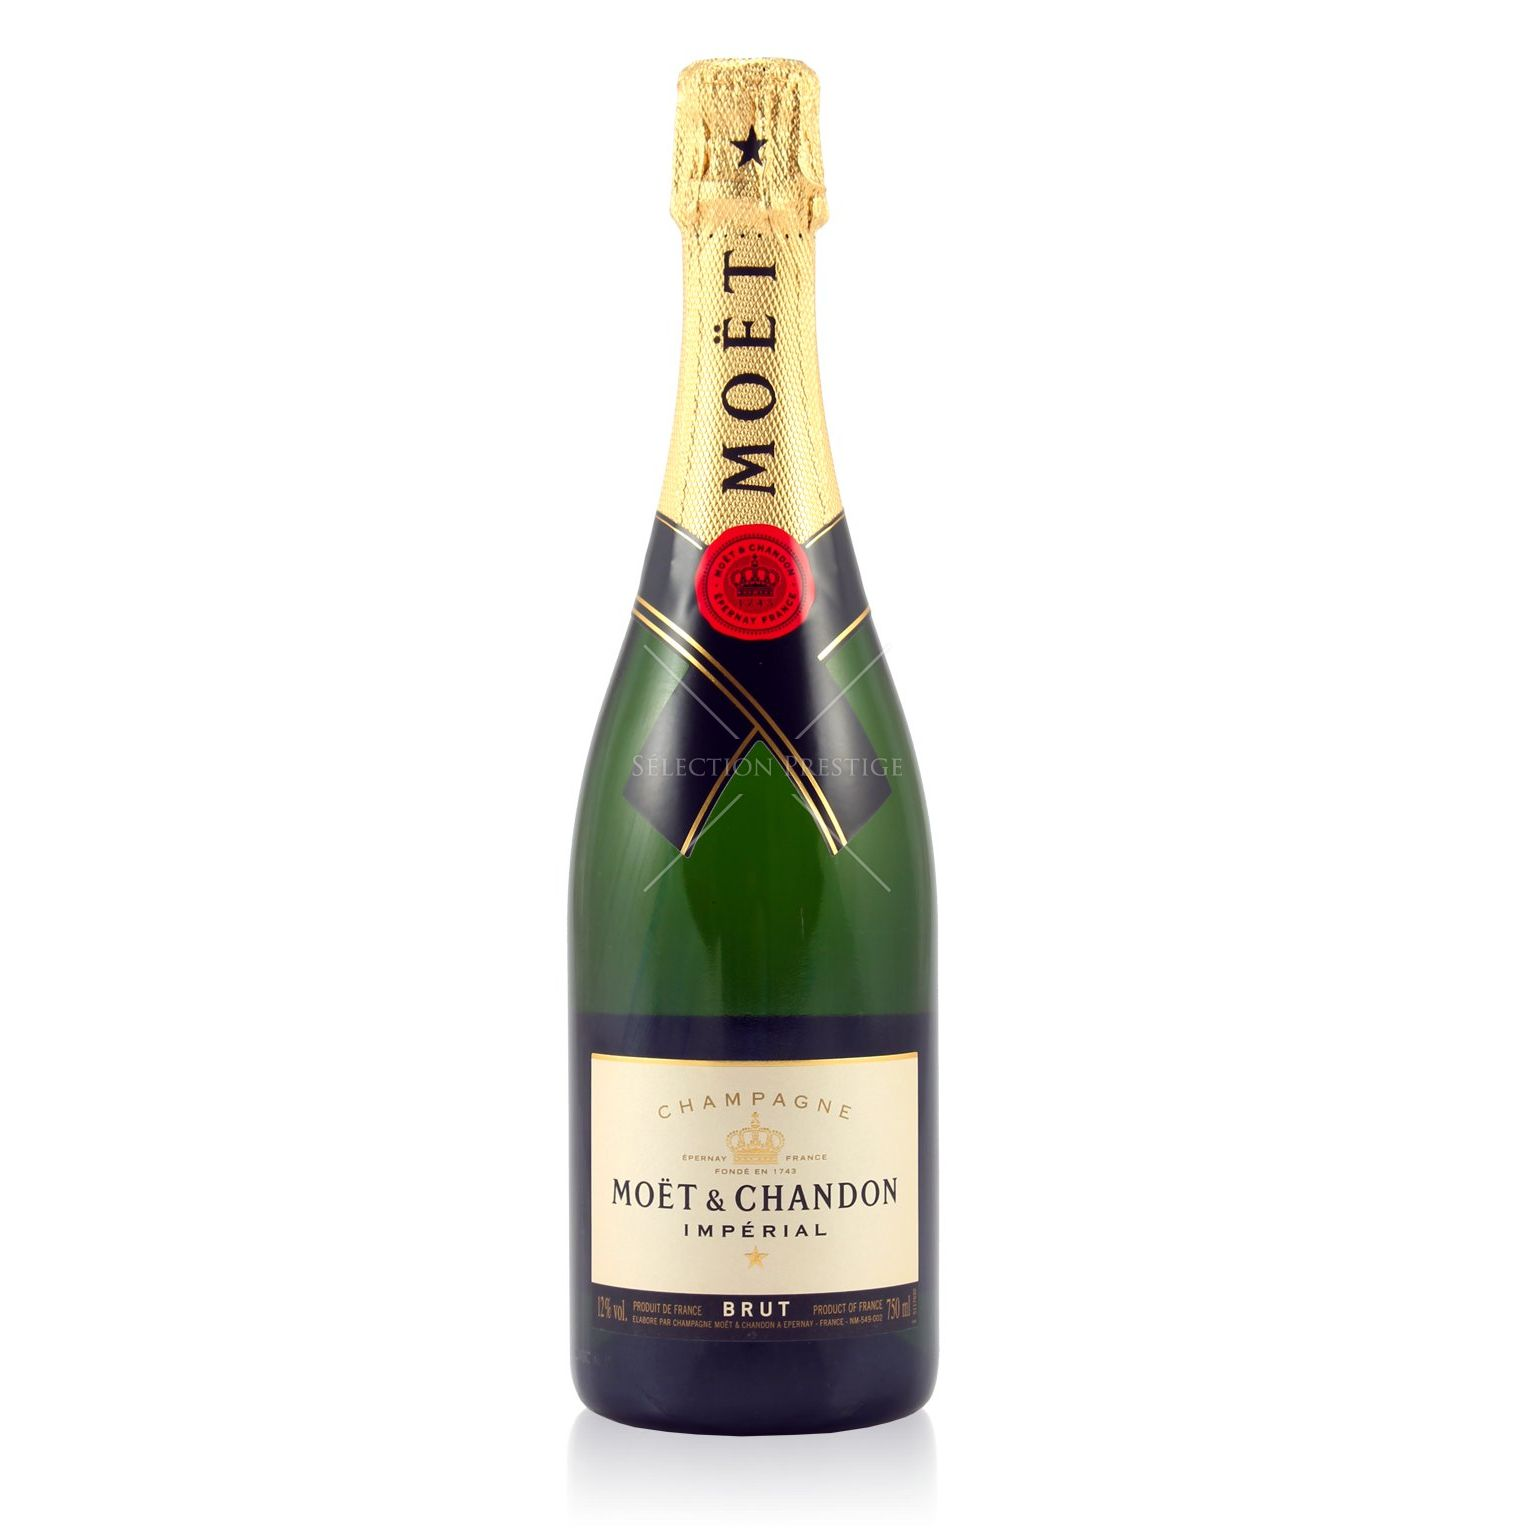 mo t chandon brut imp rial 12 vol mo t chandon champagne. Black Bedroom Furniture Sets. Home Design Ideas